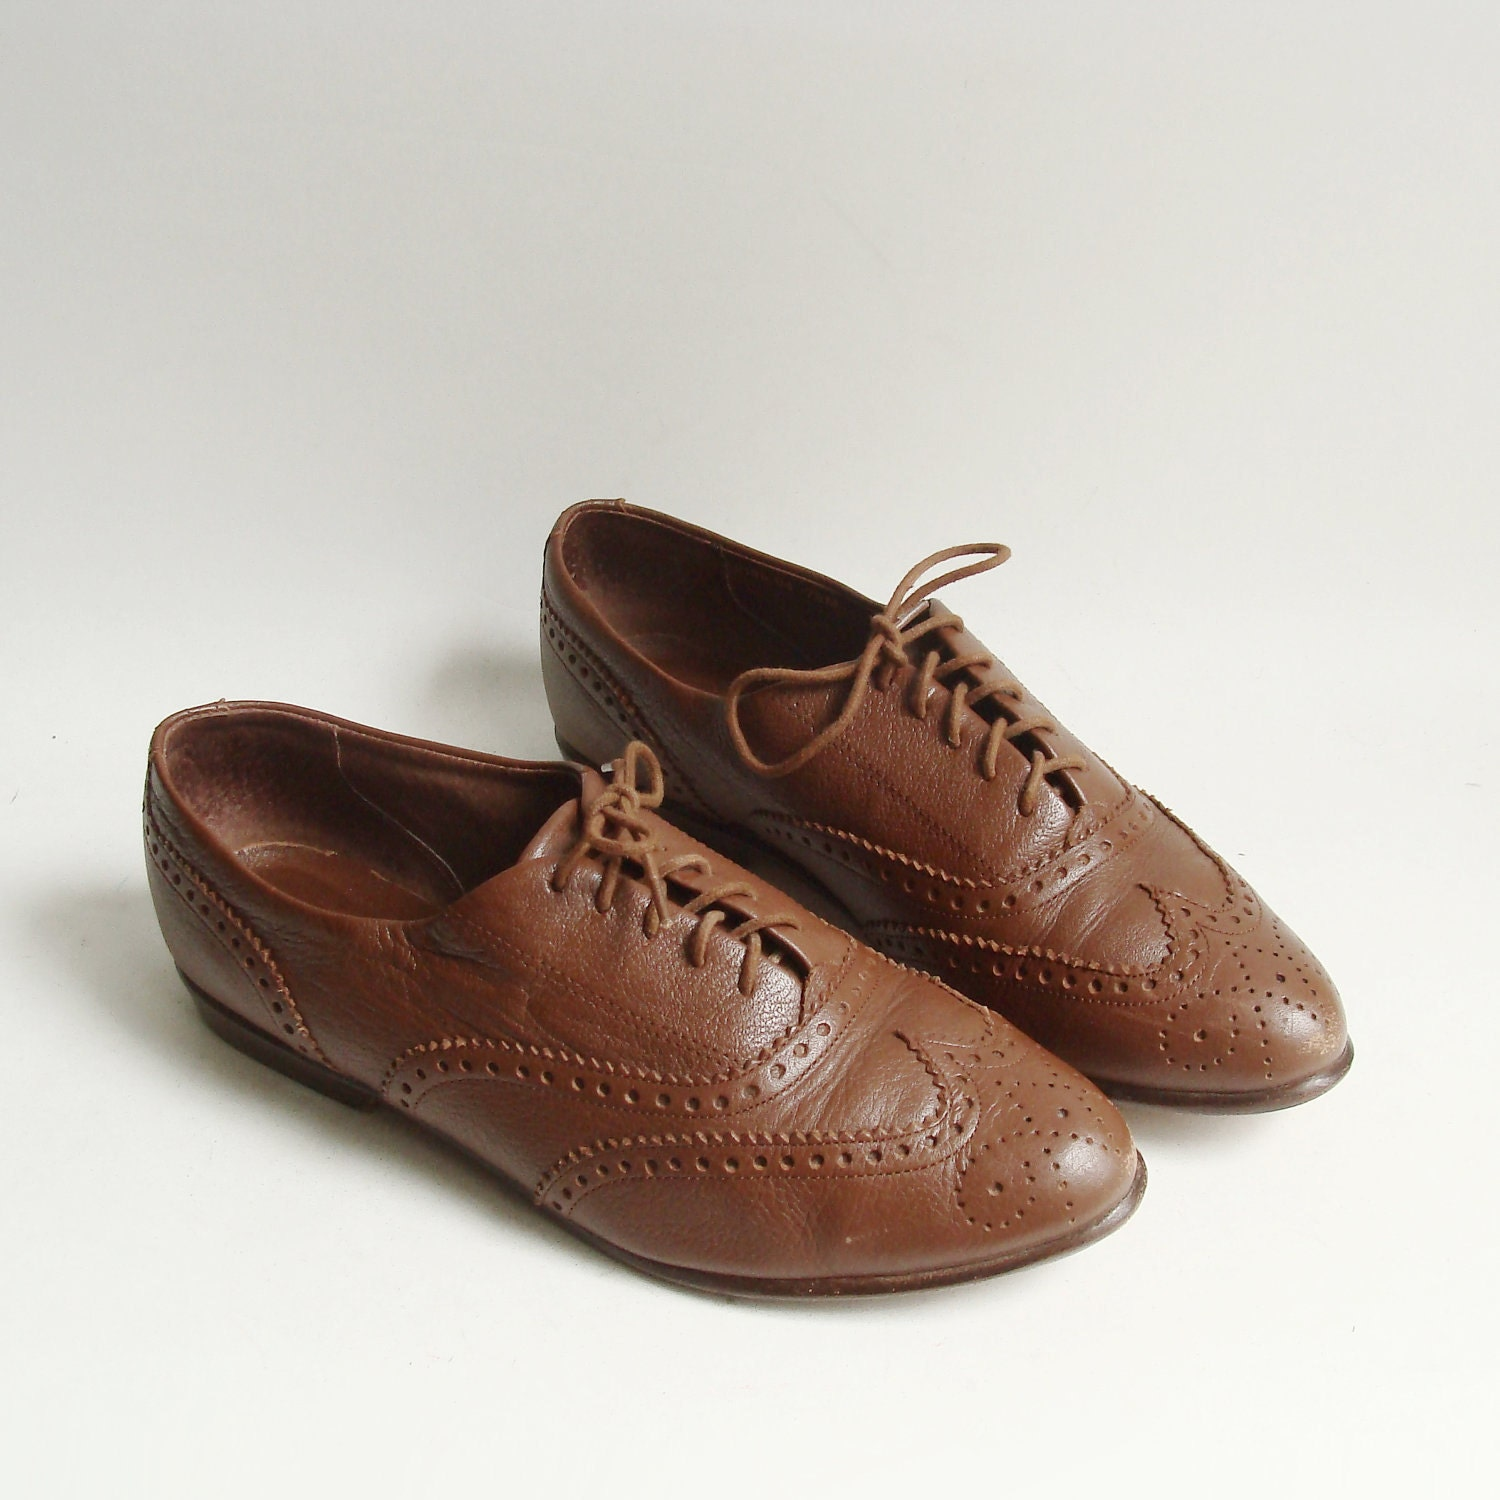 shoes 7 5 brown leather oxfords lace up by